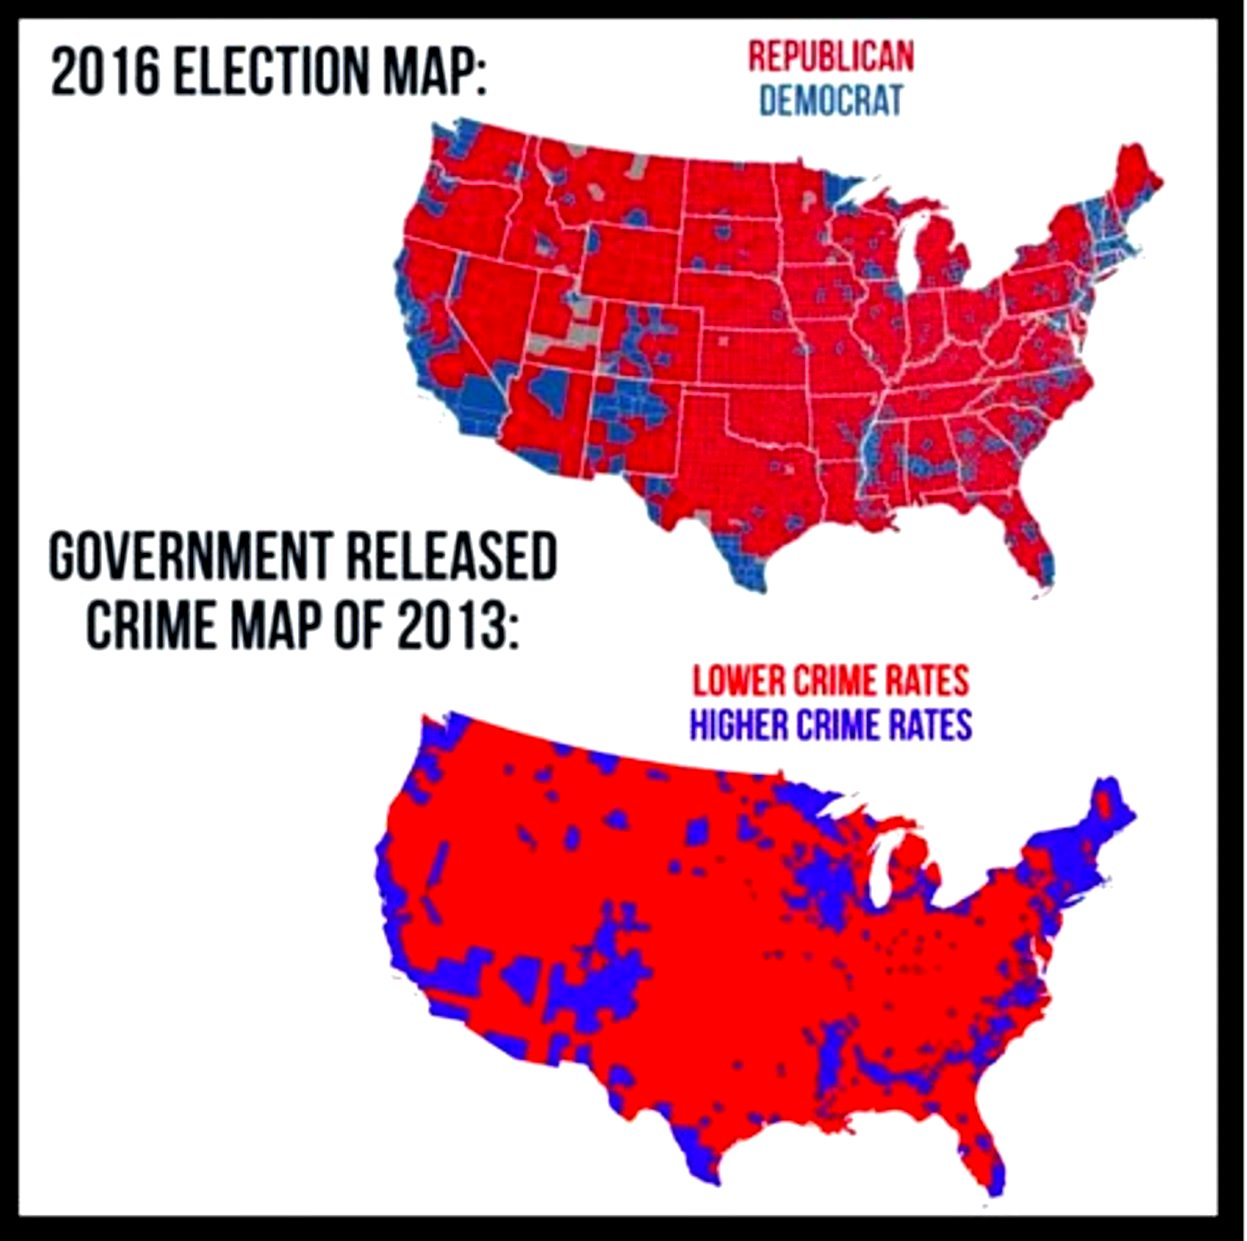 2016 Election and Crime Rate